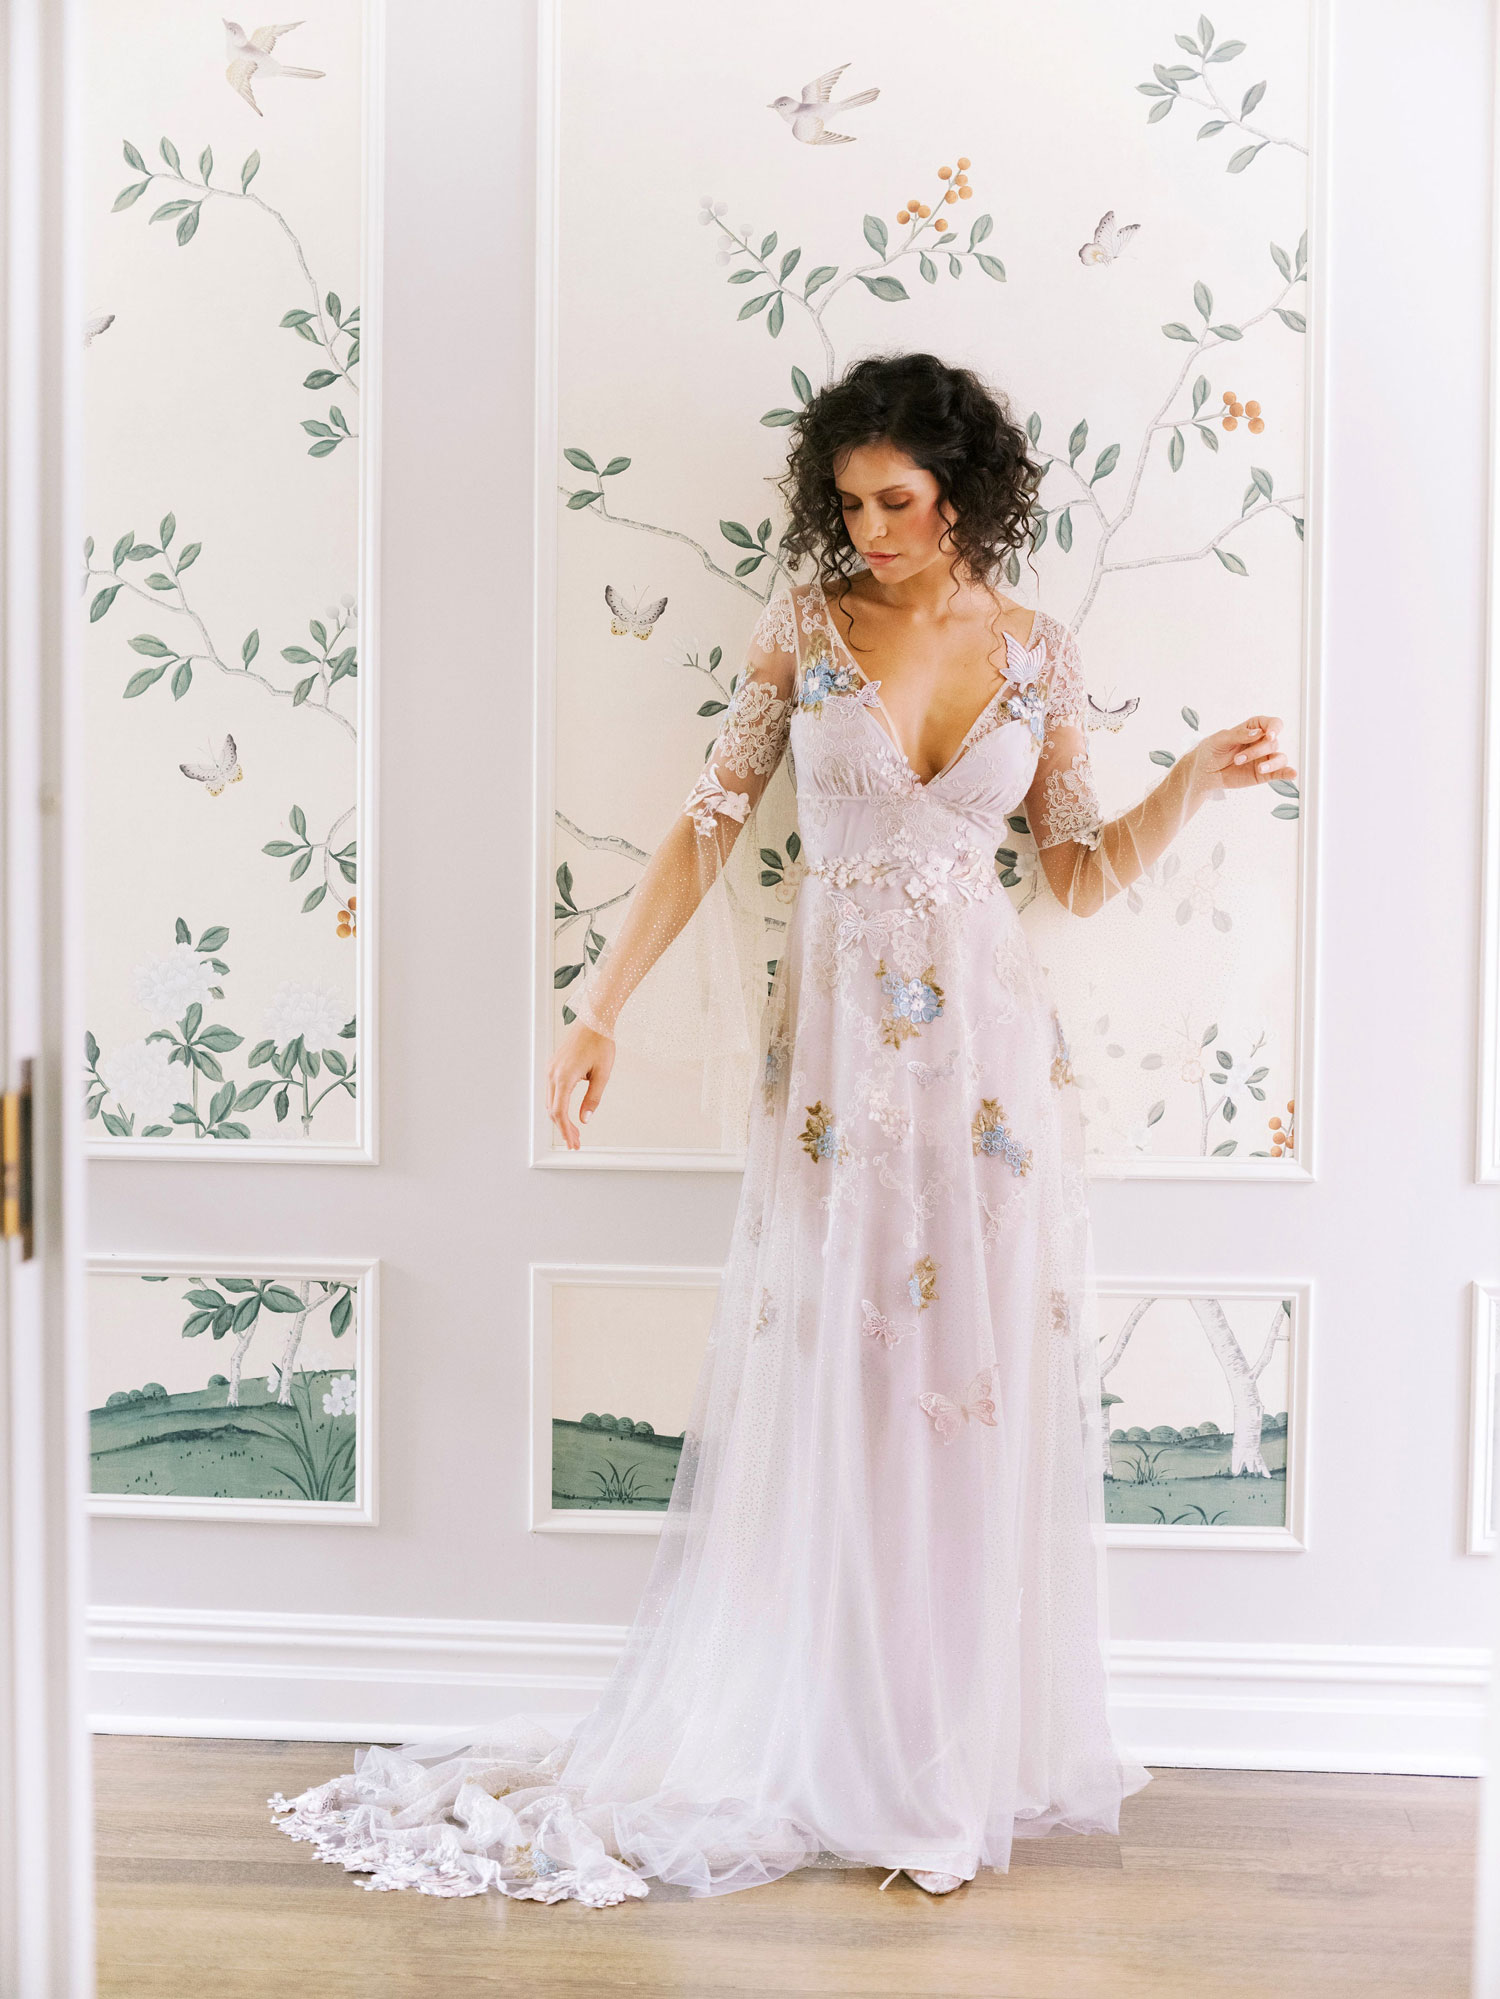 Claire Pettibone Evolution 2020 bridal collection Chrysalis romantic wedding dress